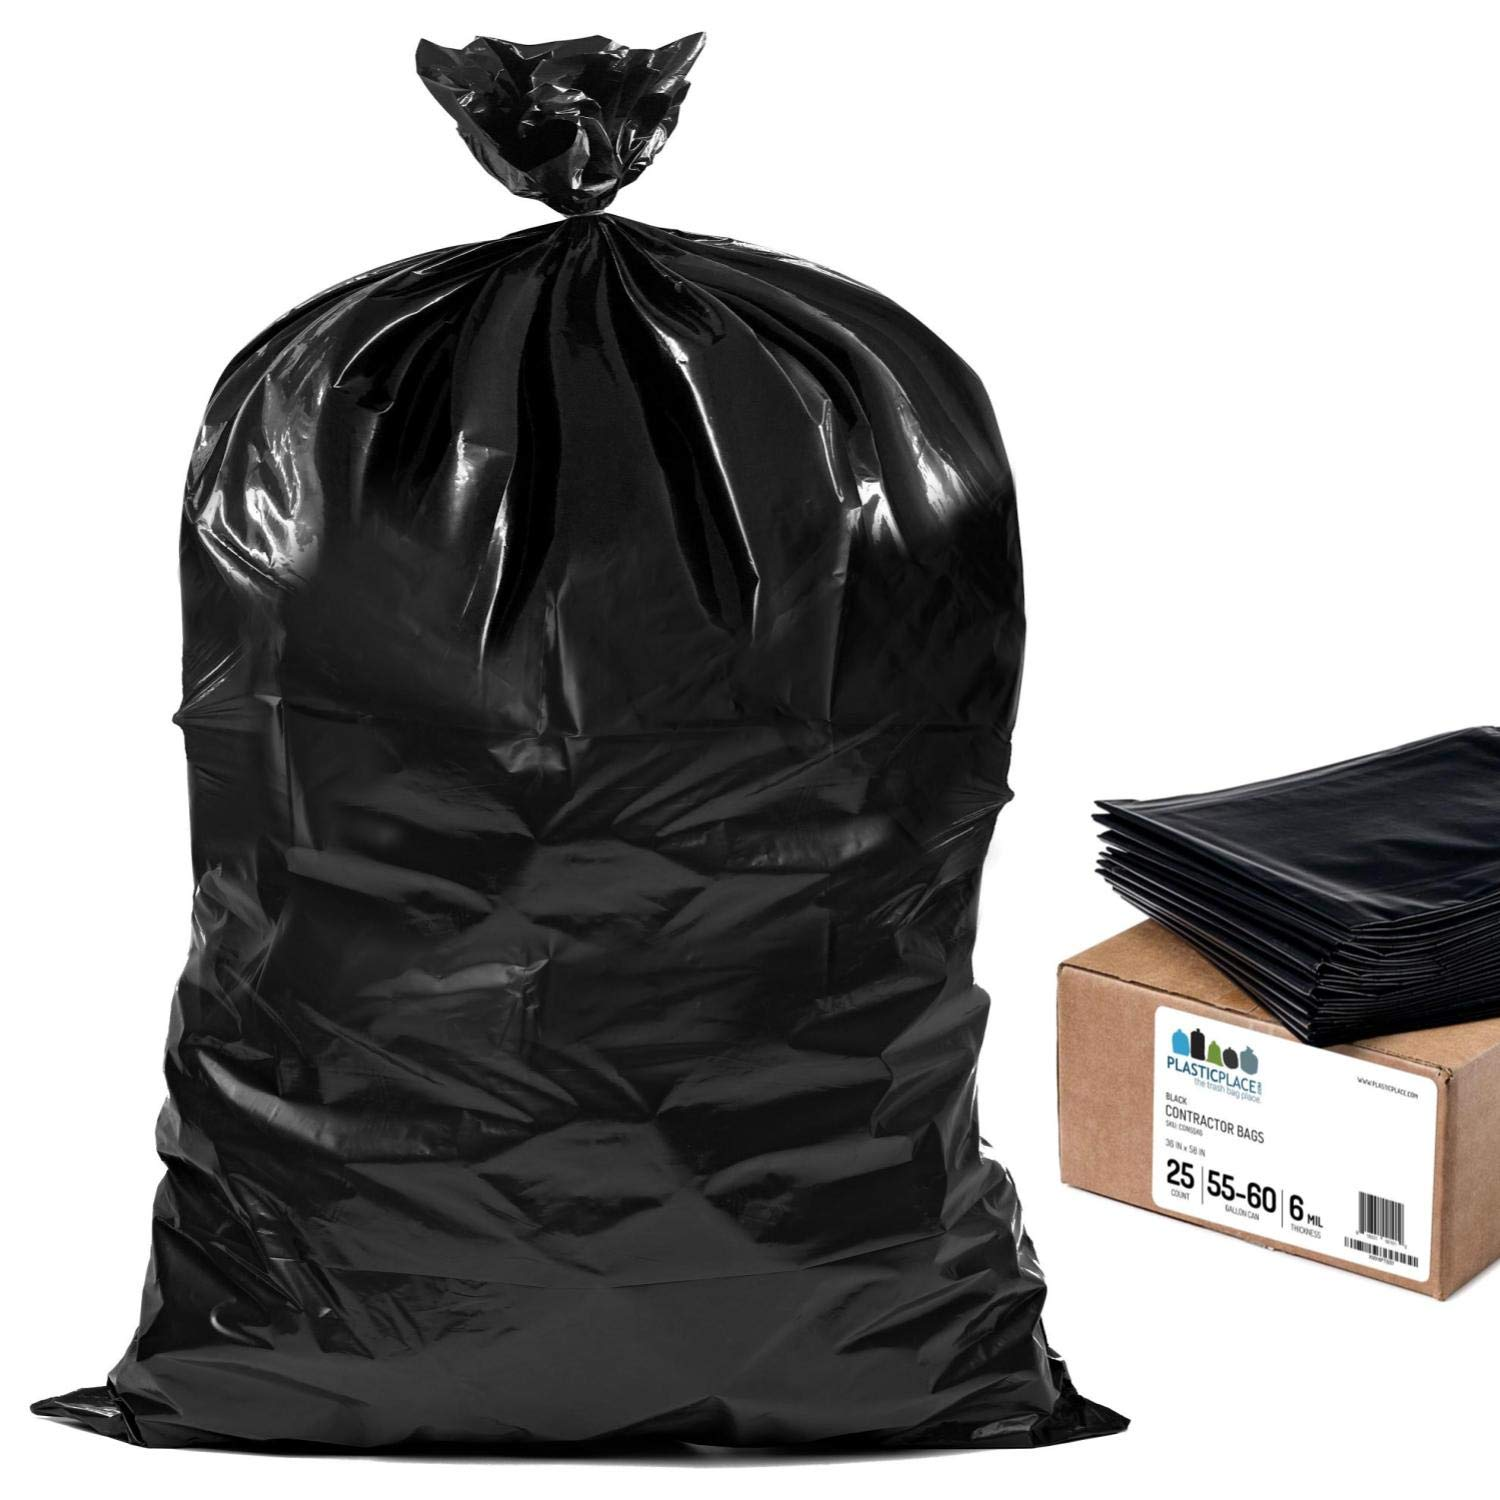 Plasticplace Contractor Trash Bags 55-60 Gallon │ 6.0 Mil │ Black Heavy Duty Garbage Bag │ 36'' x 58'' (25 Count) by Plasticplace